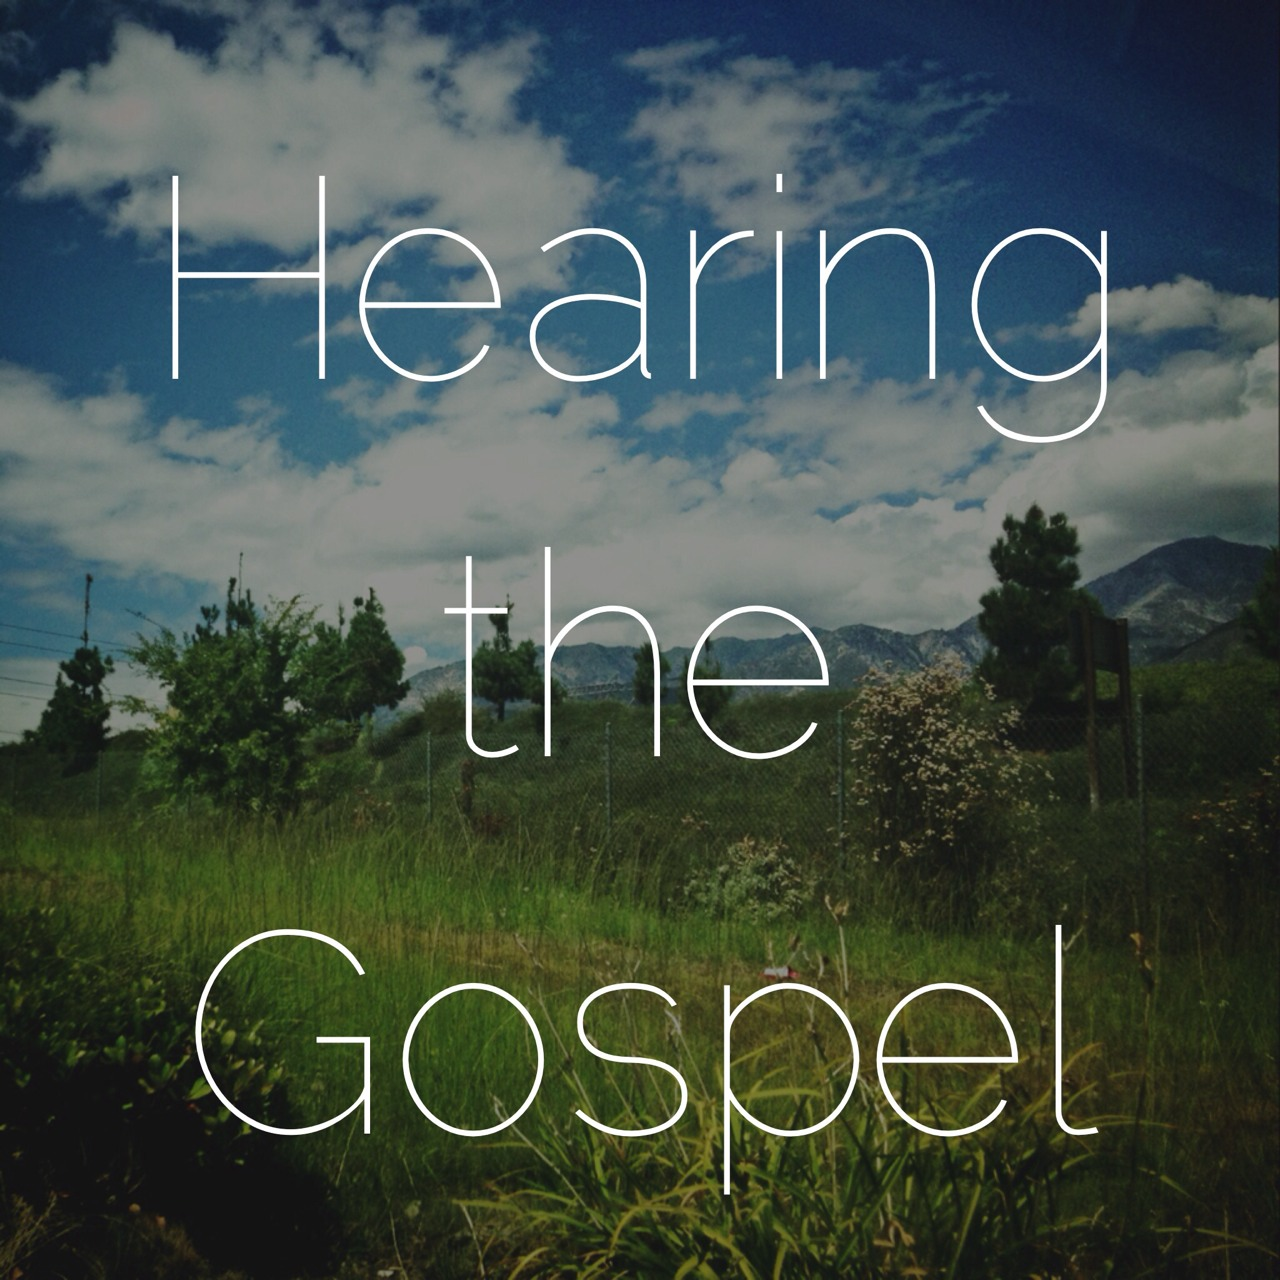 "Lately I've been reminded of my need to hear the gospel regularly. I was raised in a Christian house and I've been going to church for decades, but I still need to hear the good news about Jesus. This is what worship leader Cam Huxford says about the issue:    ""I have heard it said before that when you sing songs in worship you're preaching to yourself. You need Jesus too. Your band needs Jesus. You need to hear the gospel everyday. Be sure you and your band stop and listen to the words you're singing.""     Now Cam is obviously discussing the issue from the perspective of a worship leader, but this idea applies to us all. Sometimes when we worship we can get distracted and our minds can wander. Hopefully we're distracted by good music, but we can just as easily be distracted by an out of tune guitar or other musical mistakes. Other times we can just be lost in our minds worrying about bills to pay and responsibilities approaching on Monday. Perhaps worst of all, our pride might puff up as we think to ourselves, ""I've heard this idea too many times recently. I don't need to hear about this again.""     That mindset, I think, is the most dangerous. Our assumption that we don't need to hear the gospel regularly and often demonstrates that we've misunderstood our predicament. God wants us to grow and mature in our faith, but that doesn't mean we give up hearing the good news.     In our services we stand whenever the gospel is read. We do this so that we recognize how life-giving the gospel is. Without the good news of Jesus we would still be dead in sins and an enemy of God.     Rob Bell had a sermon series called Jesus Wants to Save Christians. I think that's a powerful idea that we need to remember. The good news of Jesus isn't just for non-Christians; it's for all of us.    Ron"